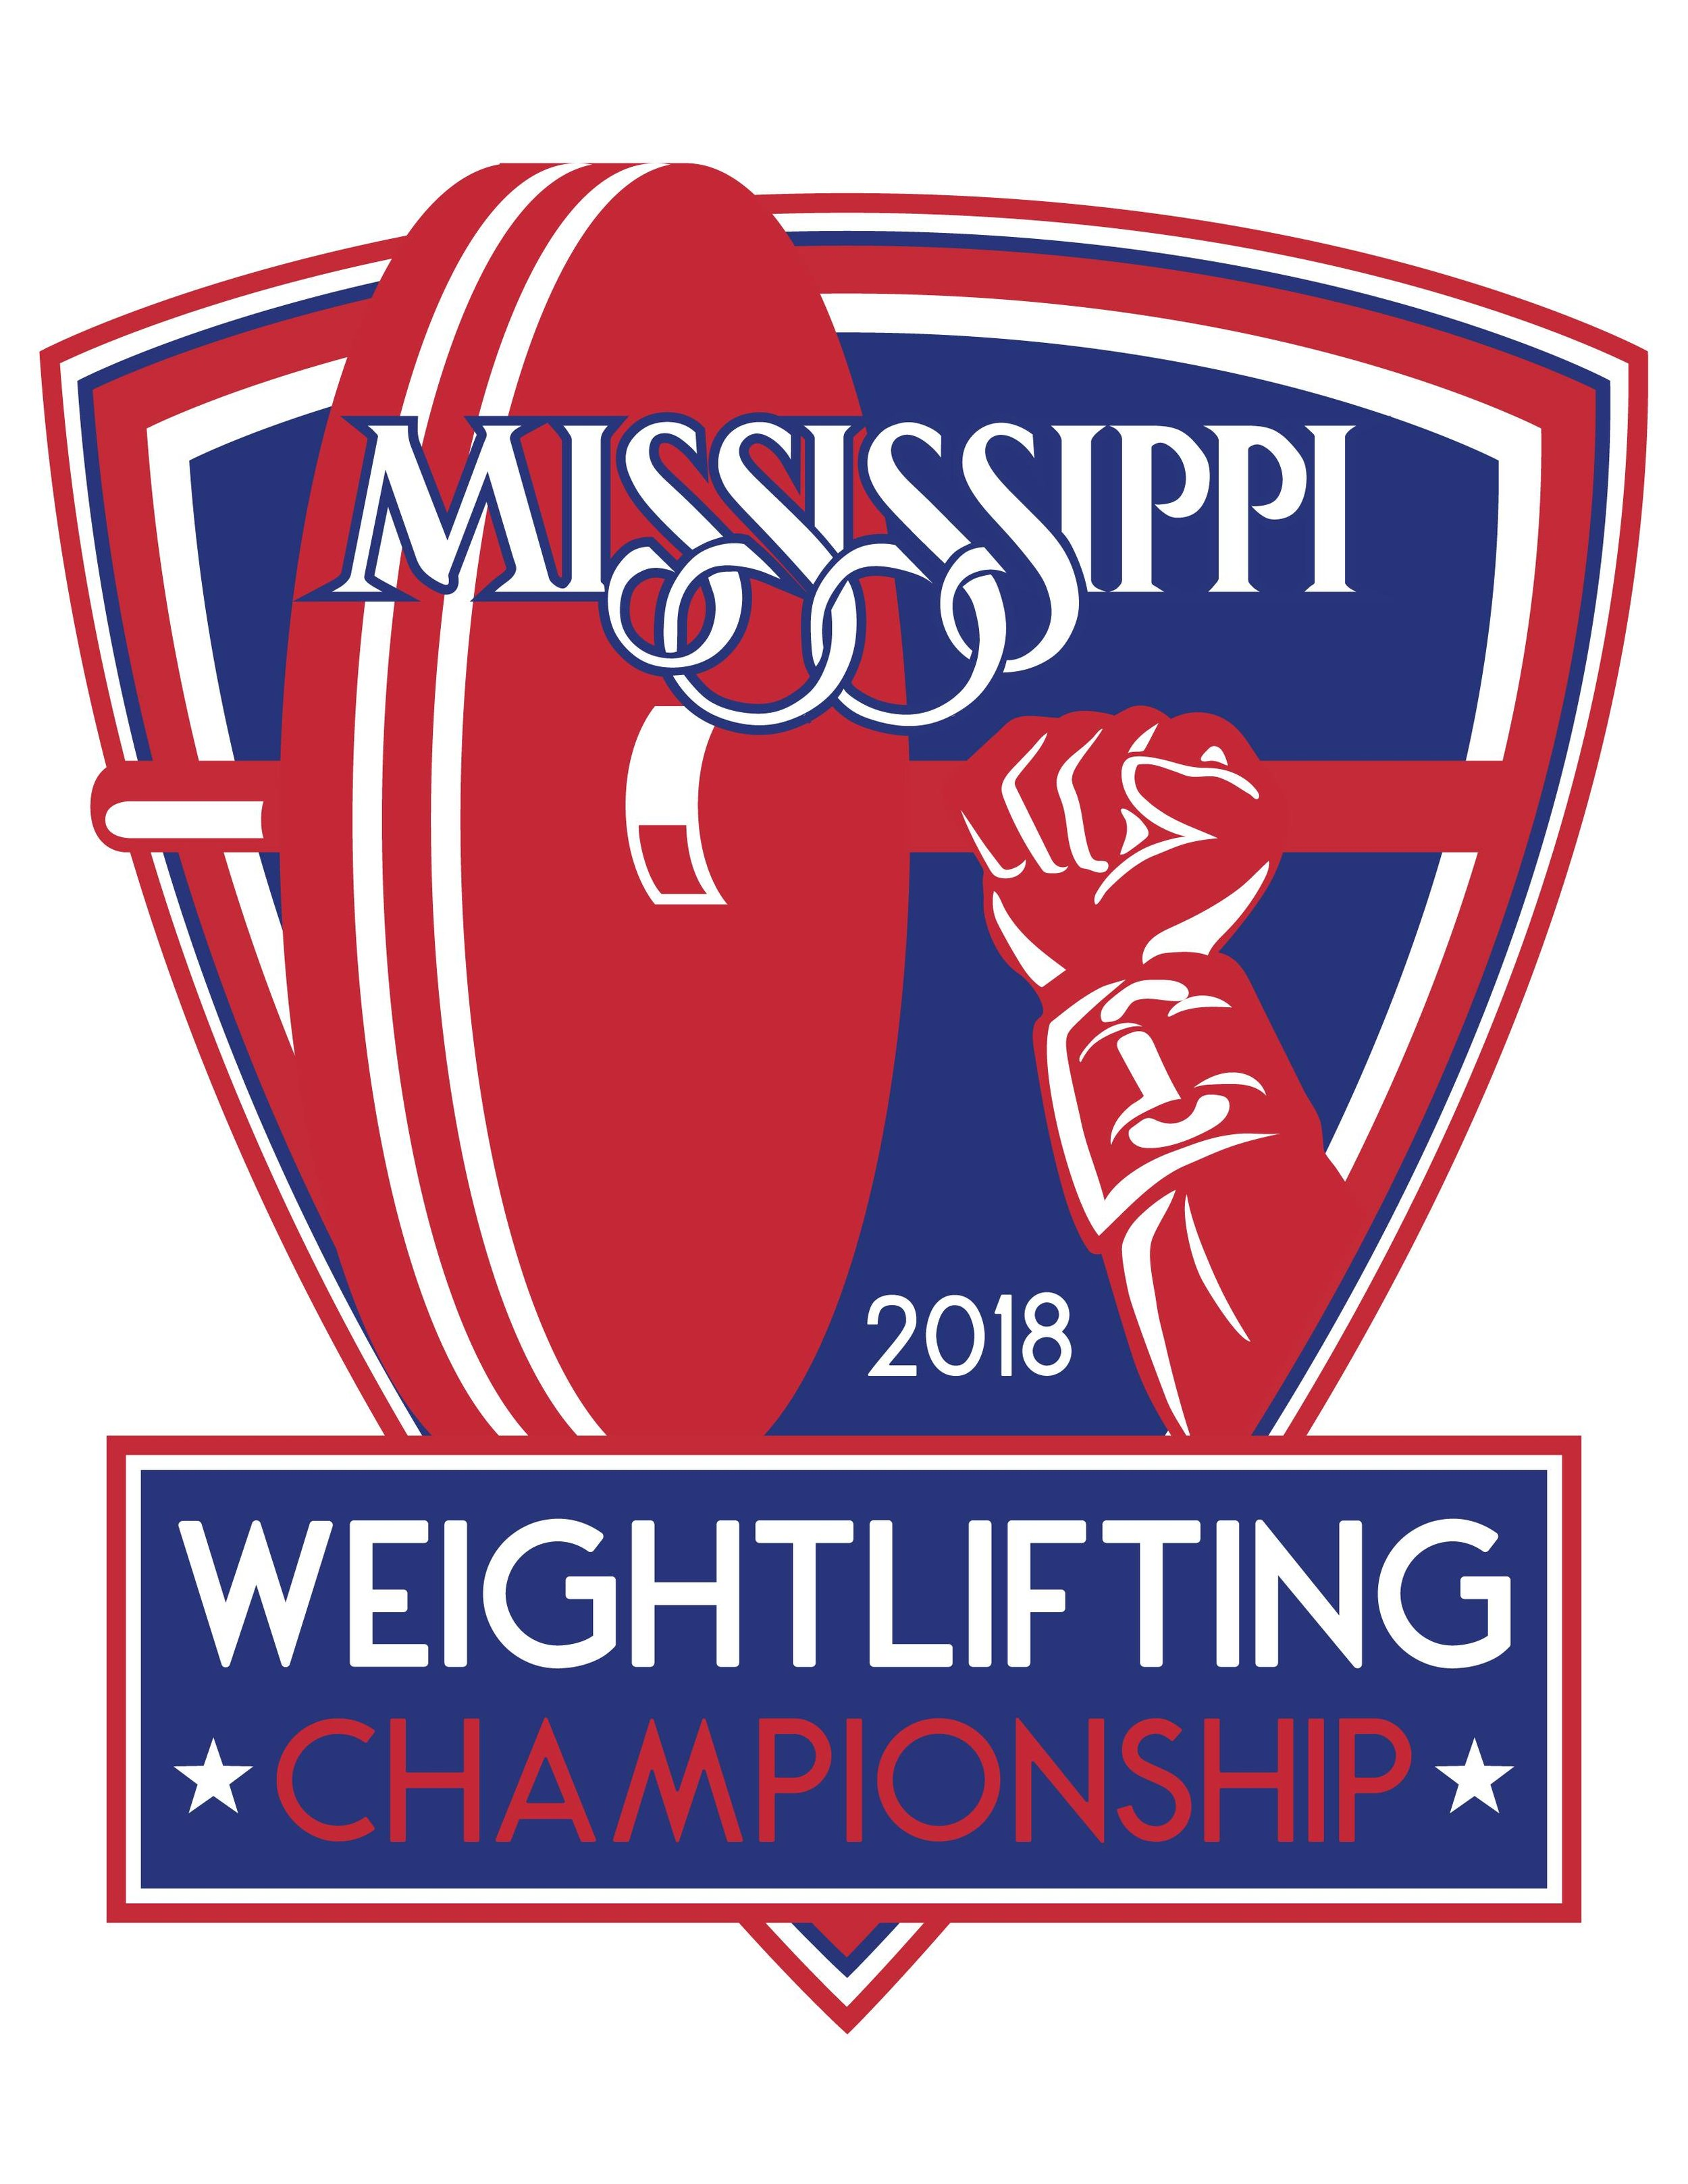 USA Weightlifting sanctioned meets in Mississippi turns 5 this year. In 2013 the first meet in state history was hosted by our club Mississippi Barbell. We have continued the annual State meet and have expanded meets throughout the state (meet directing every one of them).  Join us at Reservoir Crossfit (131 Builder's Square in Brandon, MS behind Miller's) on Saturday, June 2, 2018 for the 5th Annual State Meet.  As always, our events are open to all ages, state residencies, and abilities. This is a great event for first time athletes, those looking for more platform experience, or seasoned athletes looking for a qualifying total for a national event.  Divisions: Athletes may choose to register in a USAW or a non-USAW division.  Athletes electing to compete in a USAW division MUST have a current USAW membership. Memberships can be purchased at  https://webpoint.usaweightlifting.org/  Memberships will not be sold at the meet and therefore must be purchased prior to competition.  Athletes electing to compete in the non-USAW division will lift alongside USAW competitors, but will NOT have their results submitted to USAW for regional or national event qualification.  Lifts Tested: This Olympic weightlifting and USA Weightlifting sanctioned event consists of three attempts at the snatch and three attempts at the clean and jerk.  Weight Classes: All weight classes are in kilos. The following tables are based on USA Weightlifting's official conversion chart ( https://www.teamusa.org/USA-Weightlifting/Weightlifting101/Weight-Classes ).  Our registration form is based on and uses the information from this chart. Registering for the correct weight class falls on your shoulders, but if you have questions that aren't answered by the chart, please ask us.  Awards: The following awards will be given:  · 1st-3rd in Non-USAW division (based on Sinclair formula)  · 1st-3rd in USAW Youth division (age and weight class)  · 1st-3rd in USAW Masters division (age and weight class. Exampl